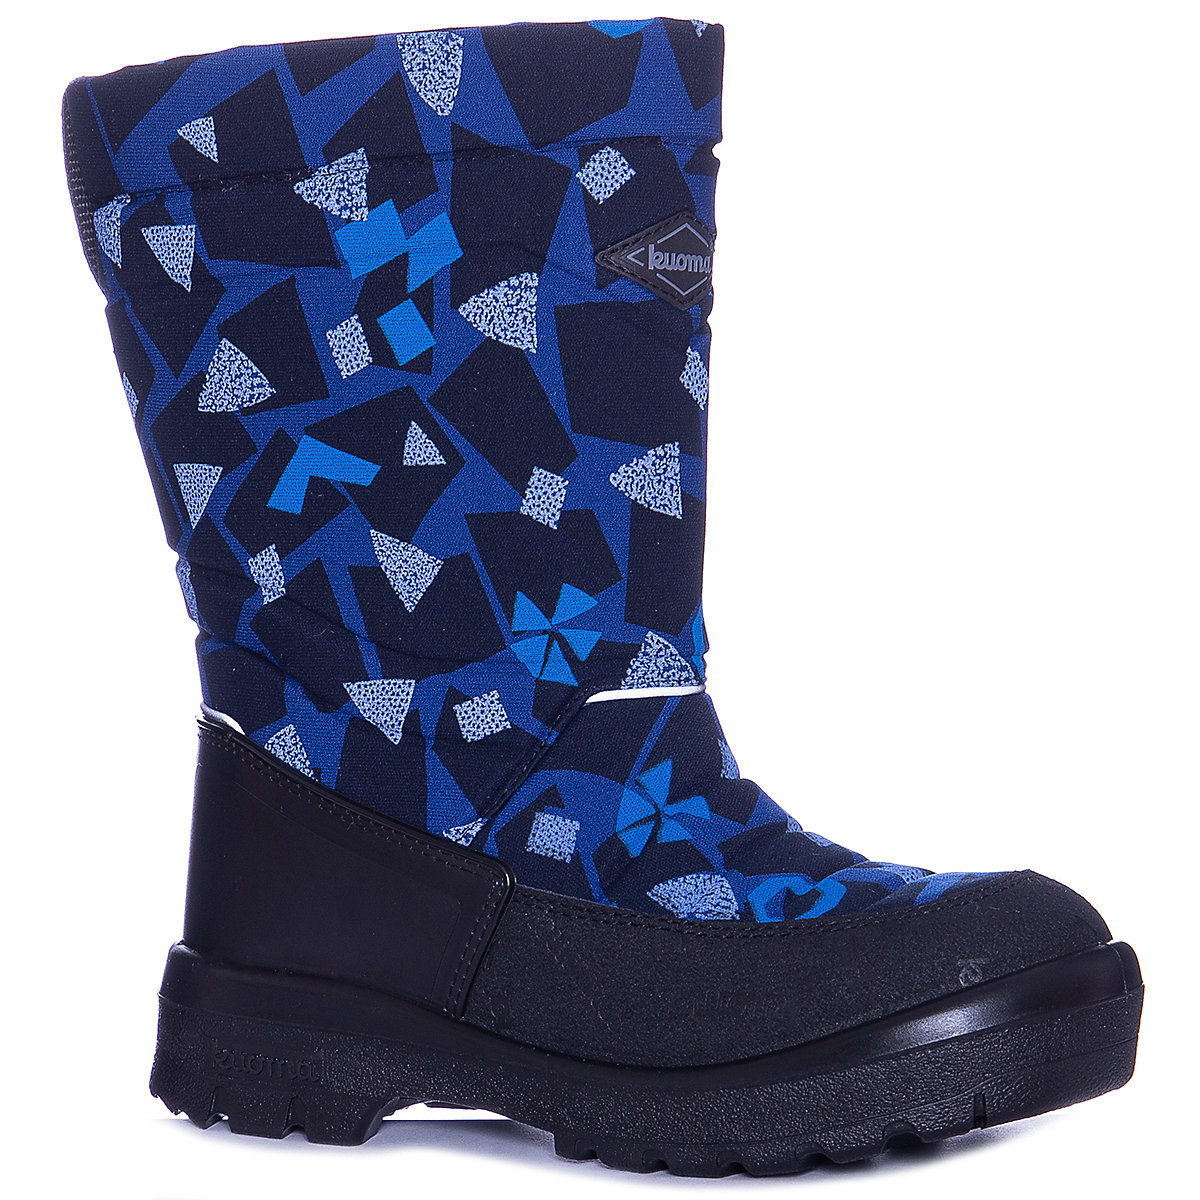 Boots KUOMA for boys 9491177 Valenki Uggi Winter shoes Children Kids